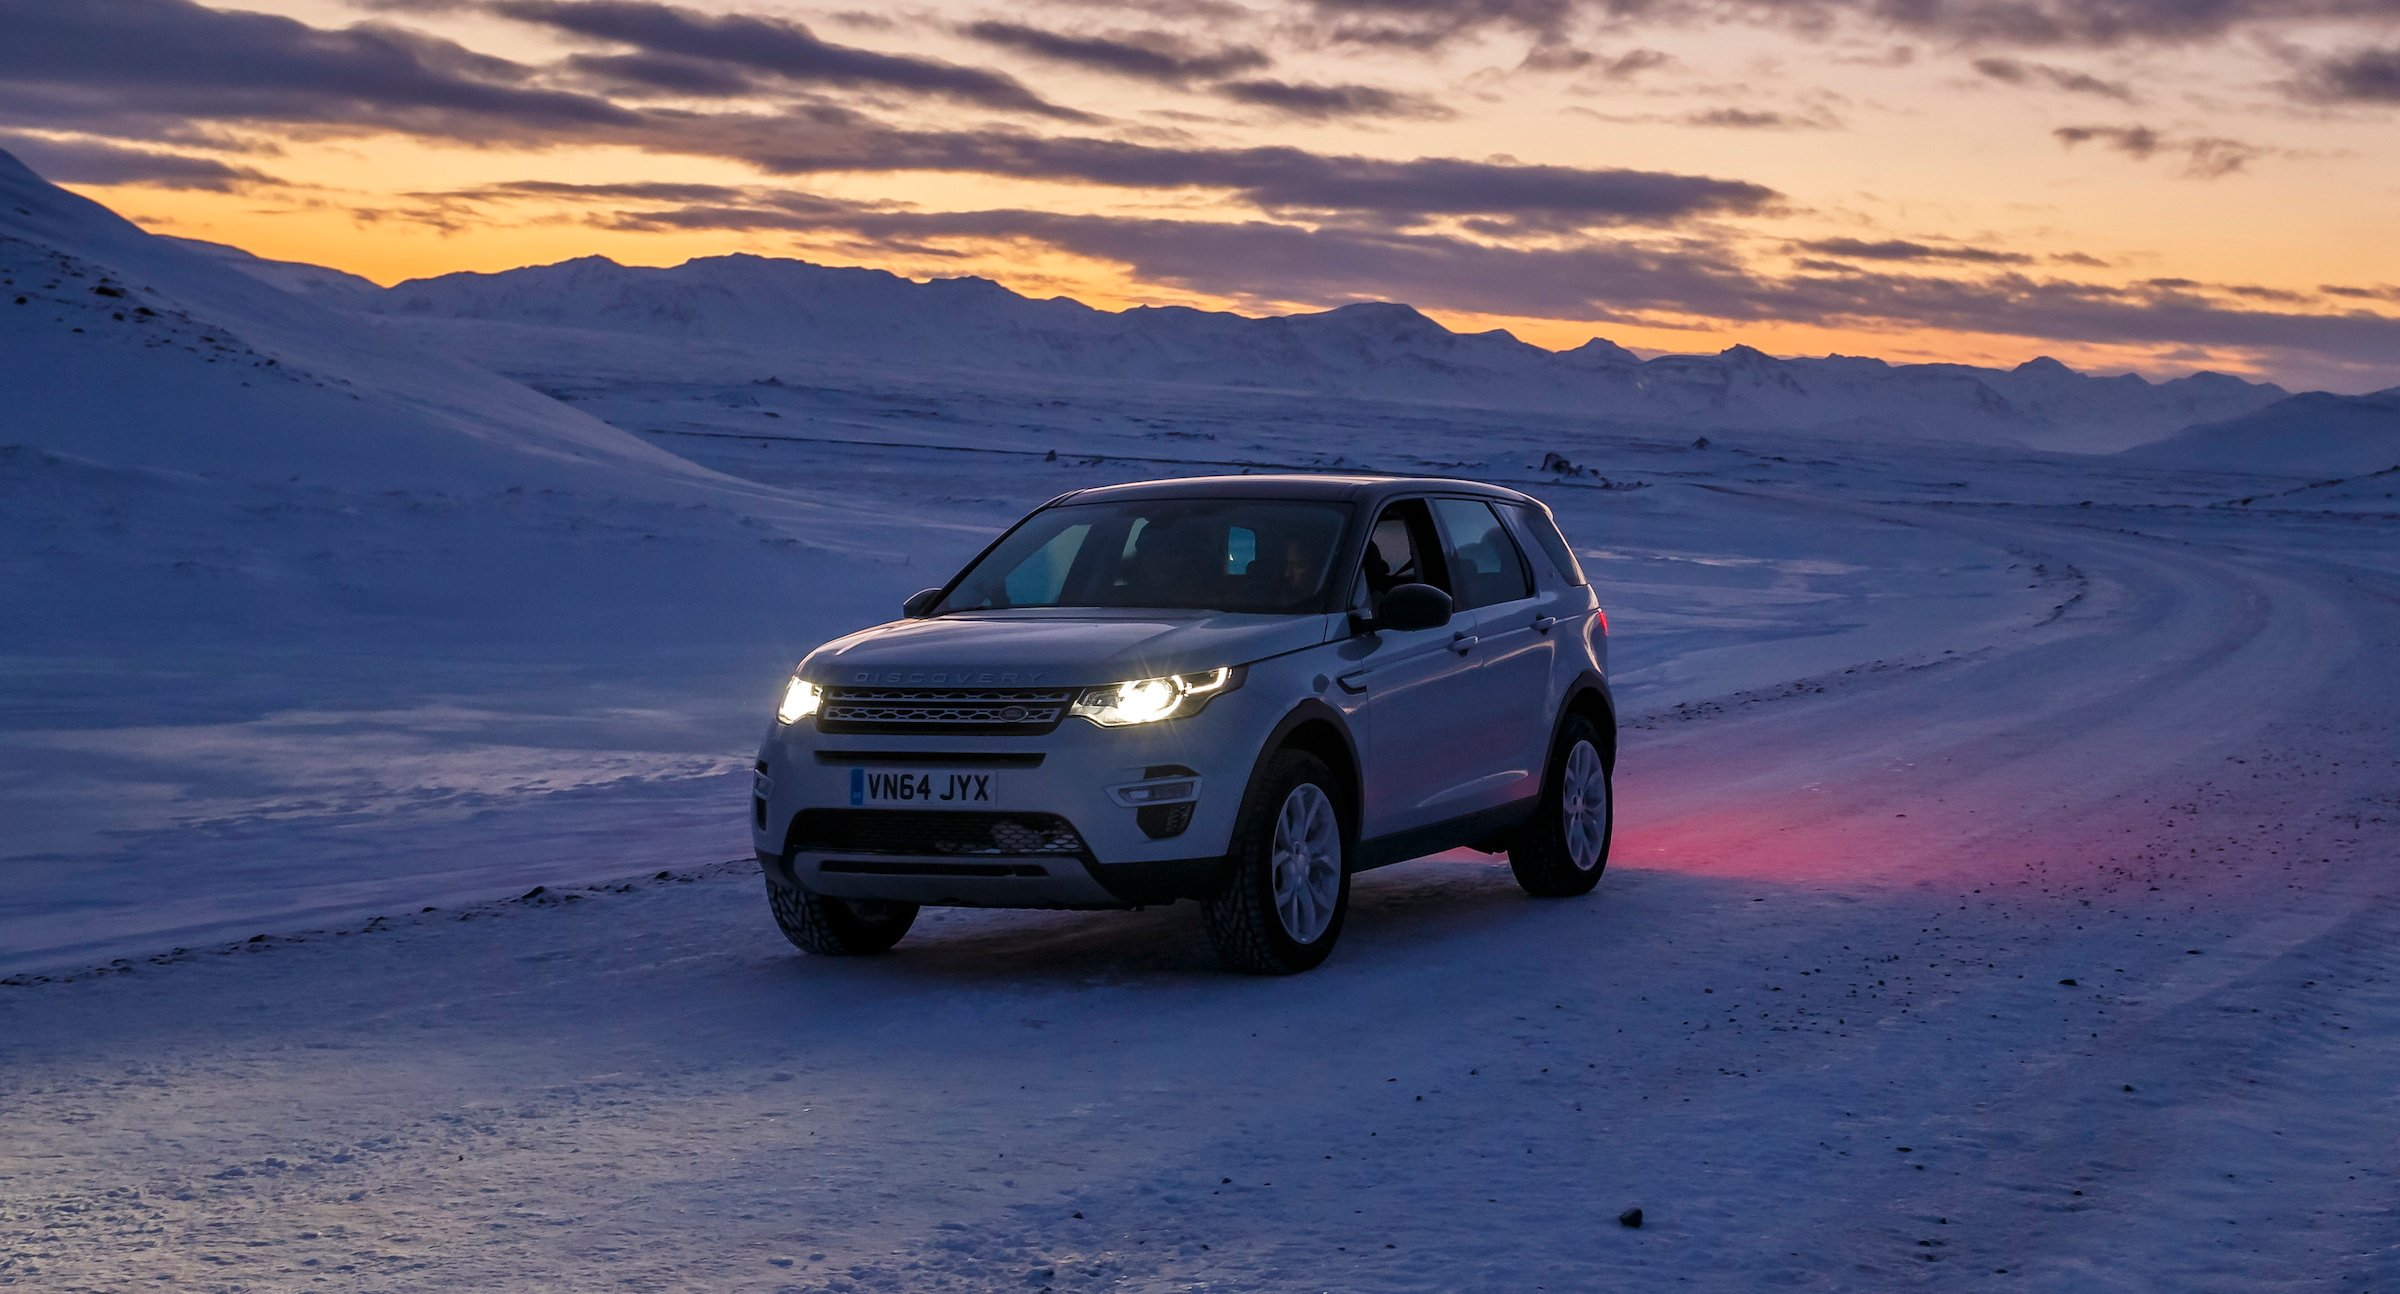 Range Rover Suv >> Land Rover Discovery Sport Review - photos | CarAdvice